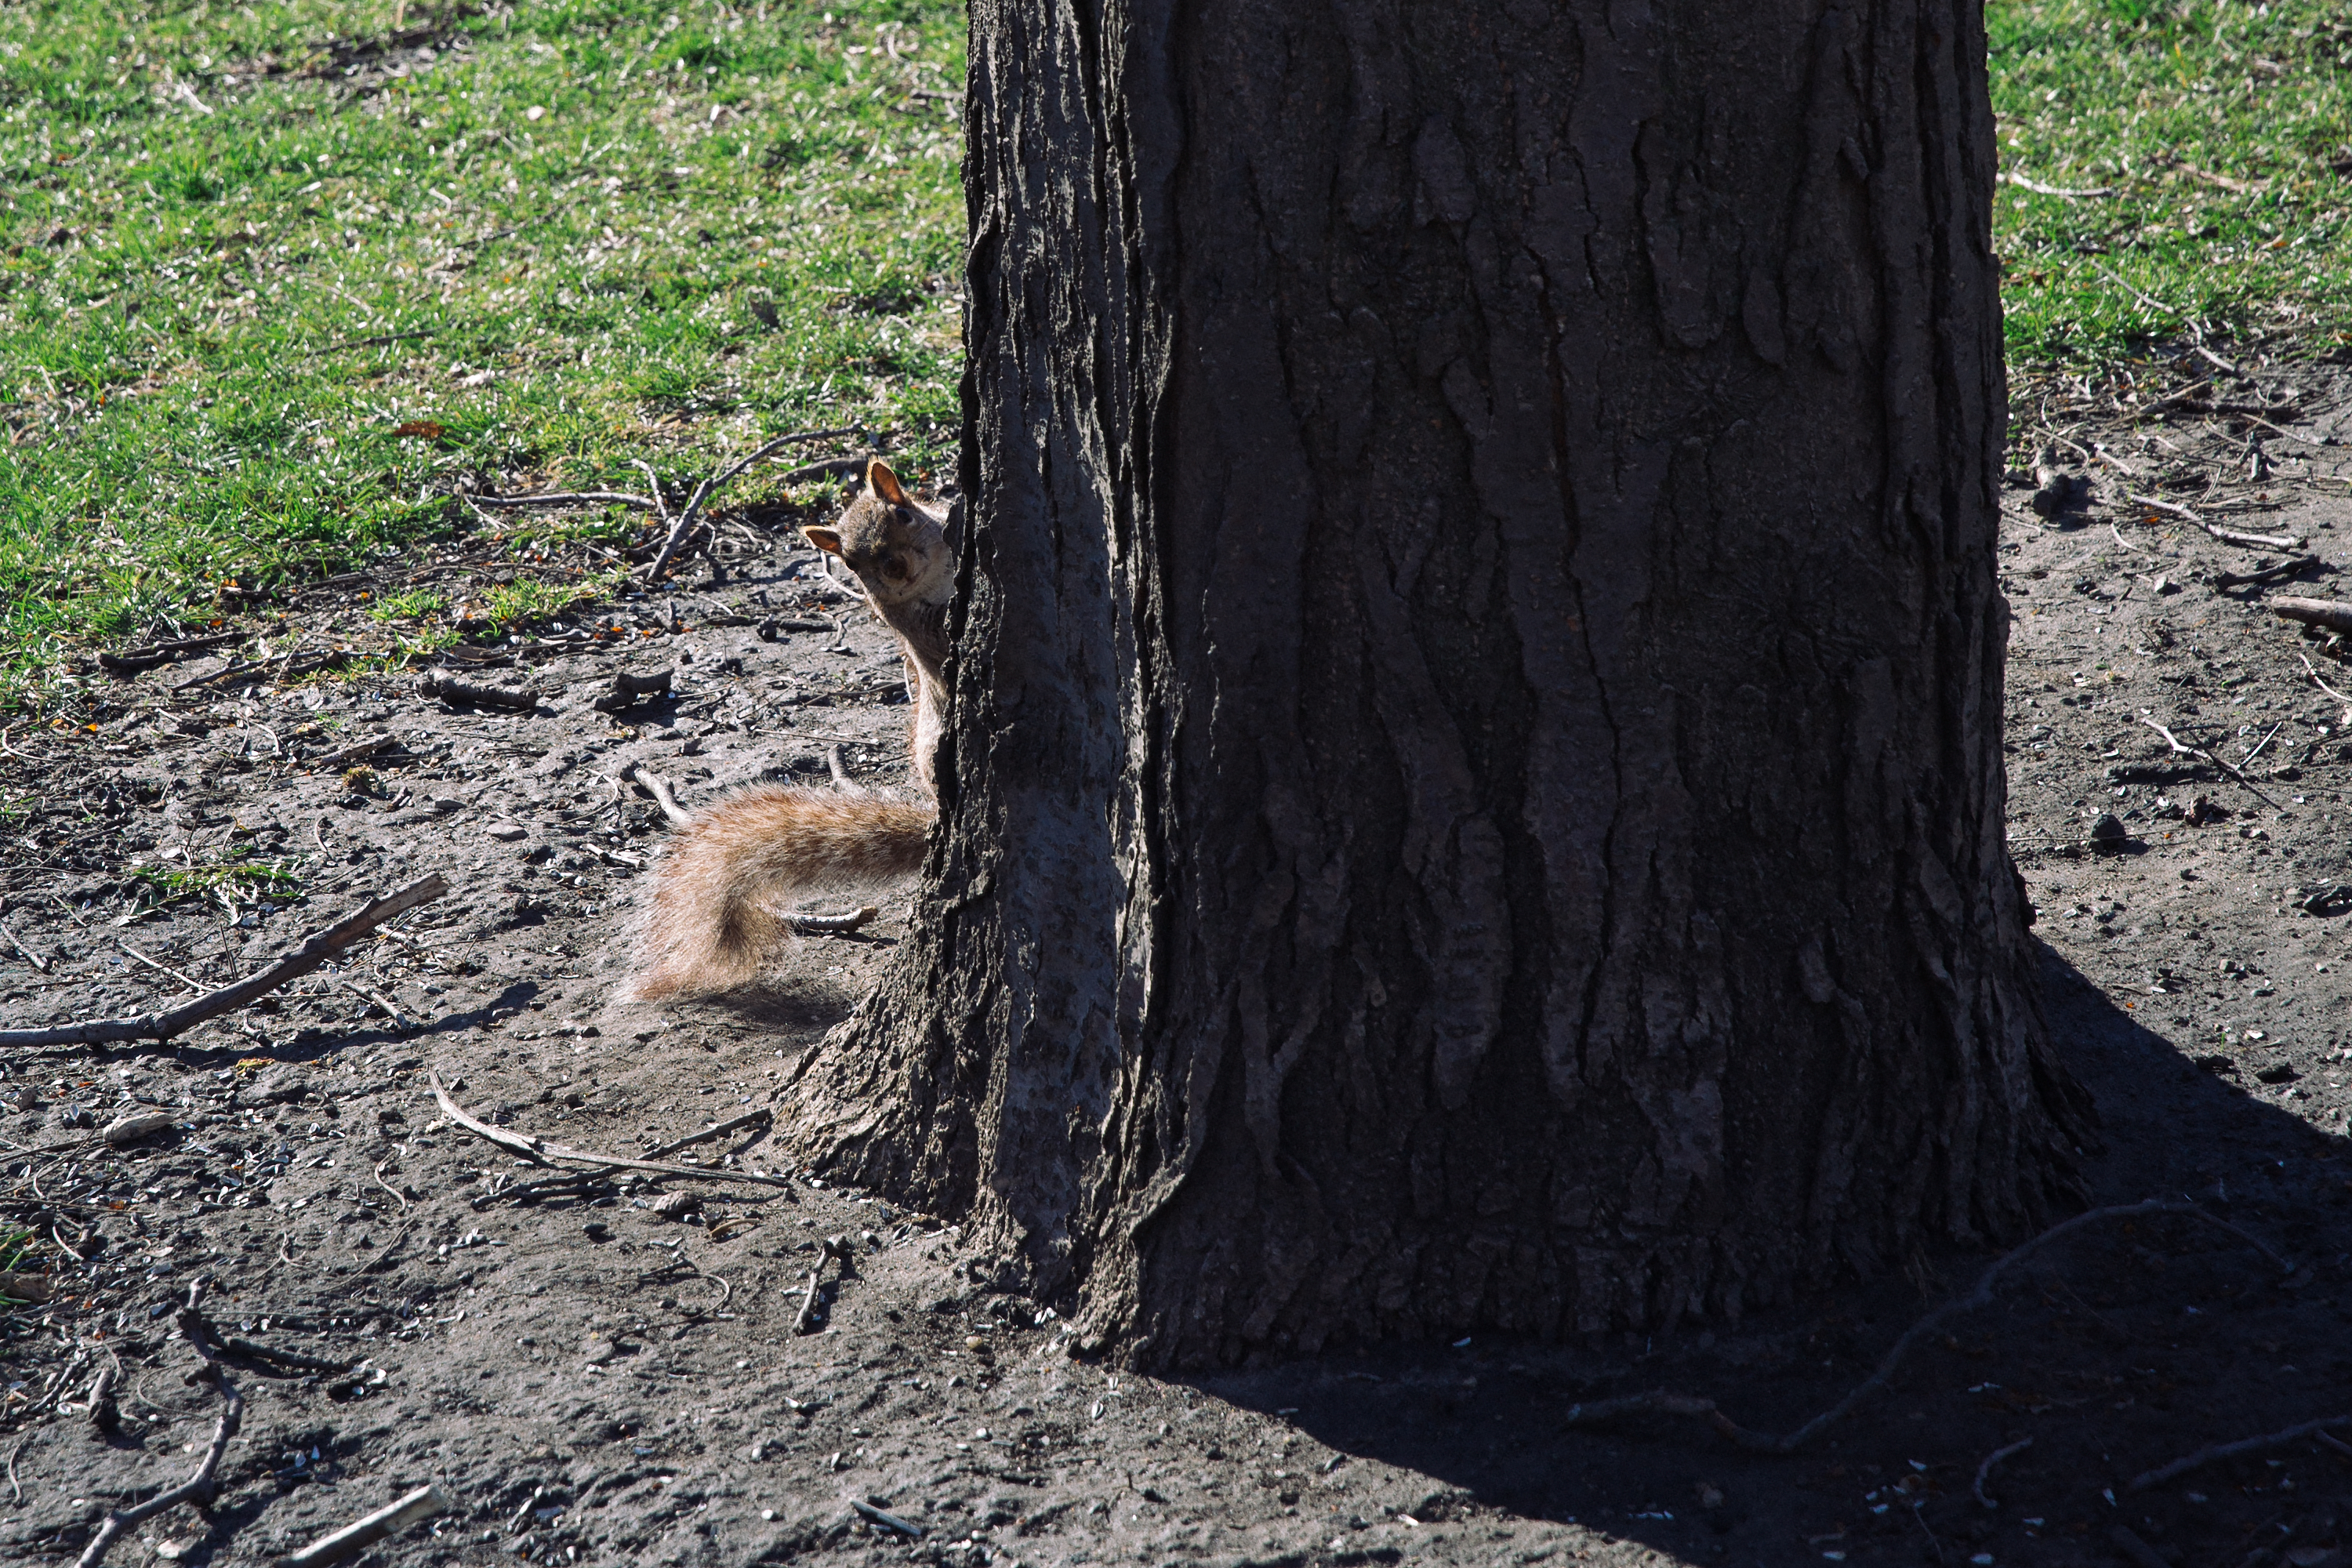 The Chicago-squirrel